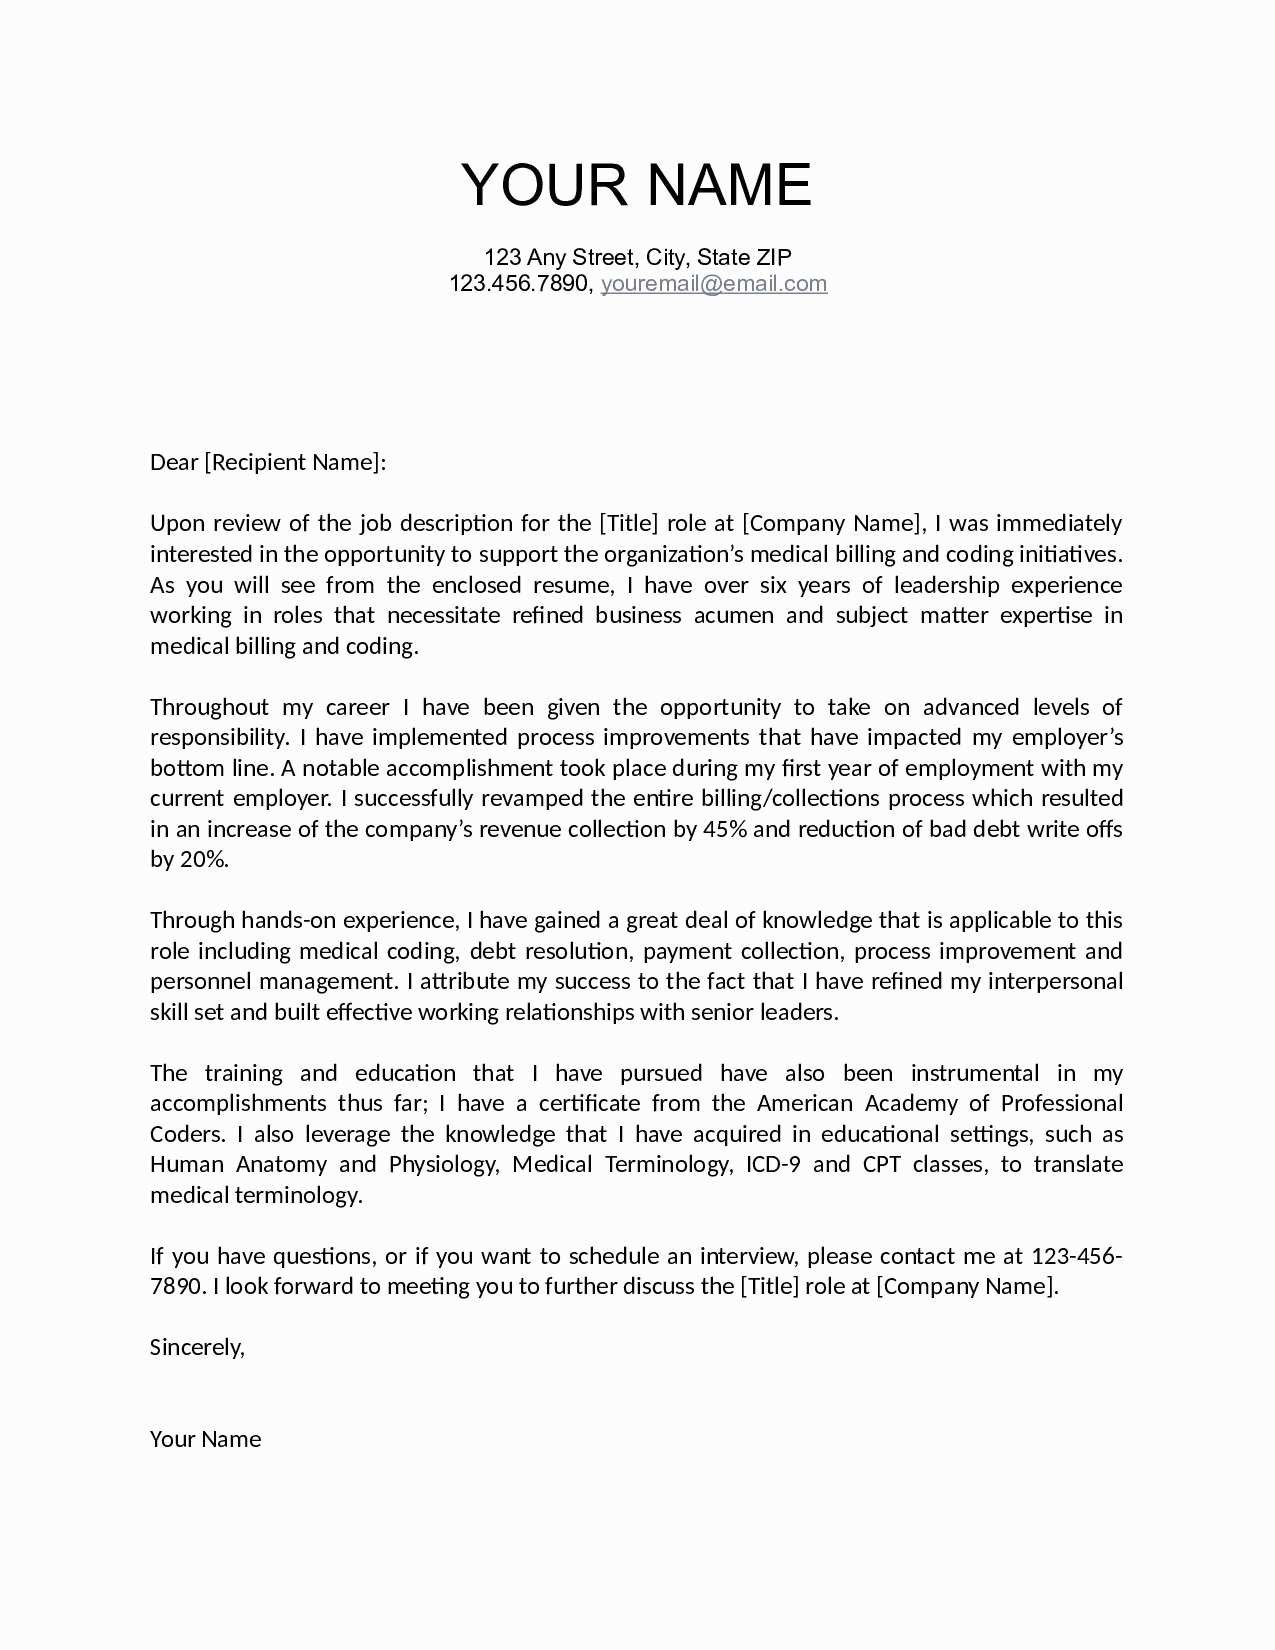 Professional Reference Letter Template - Best Re Mendation Letter Template for Job